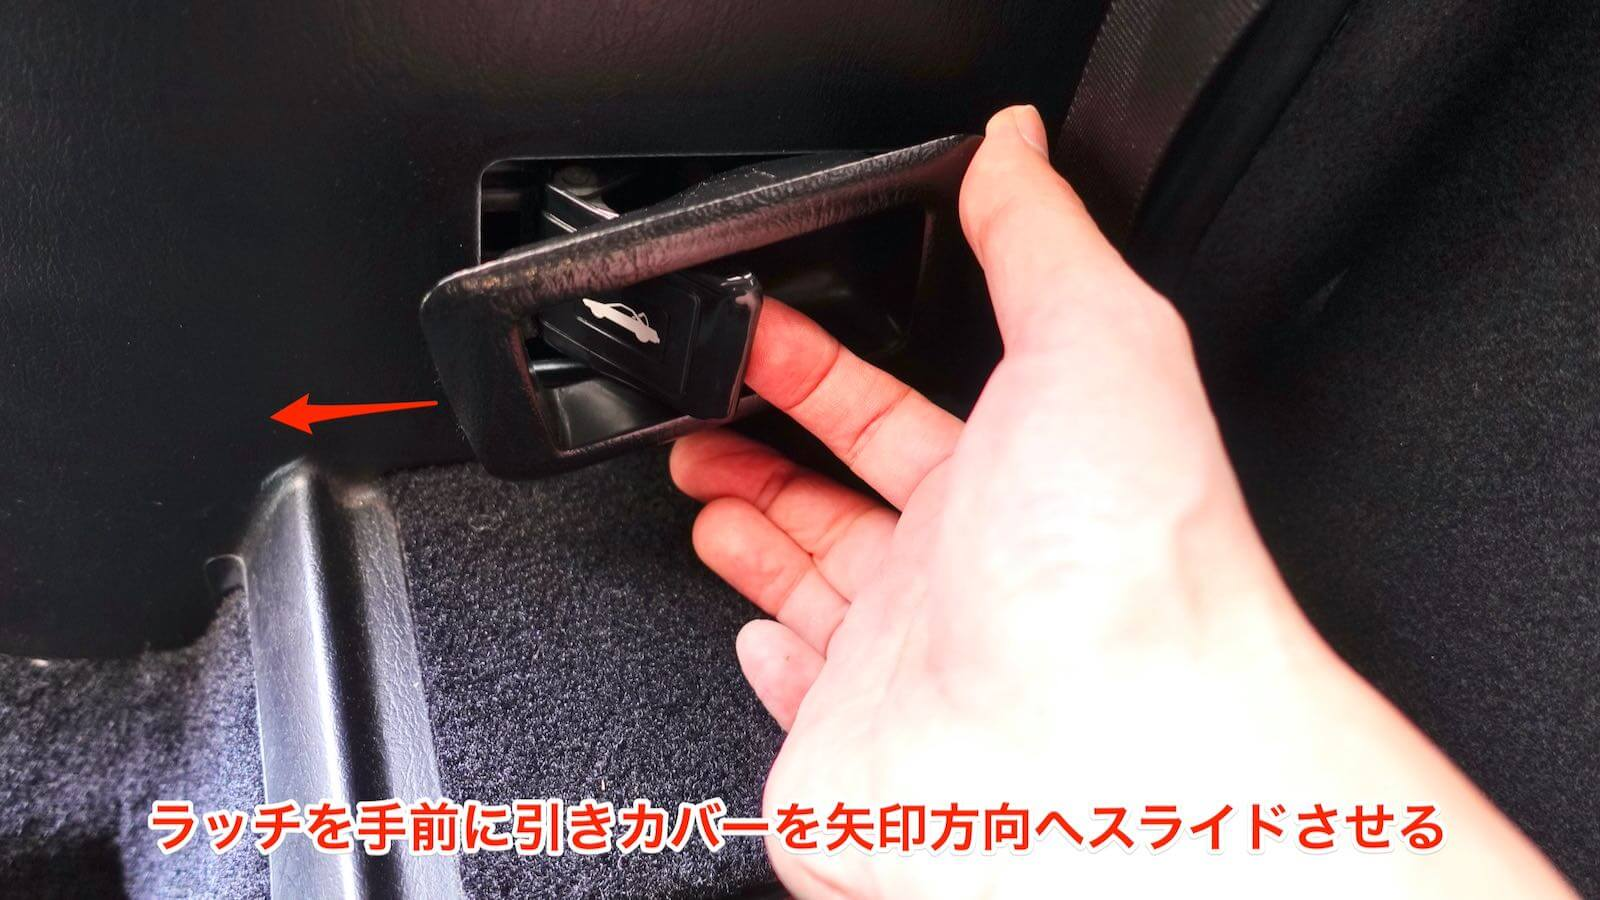 MR2 engine hood opening / closing latch cover removal method